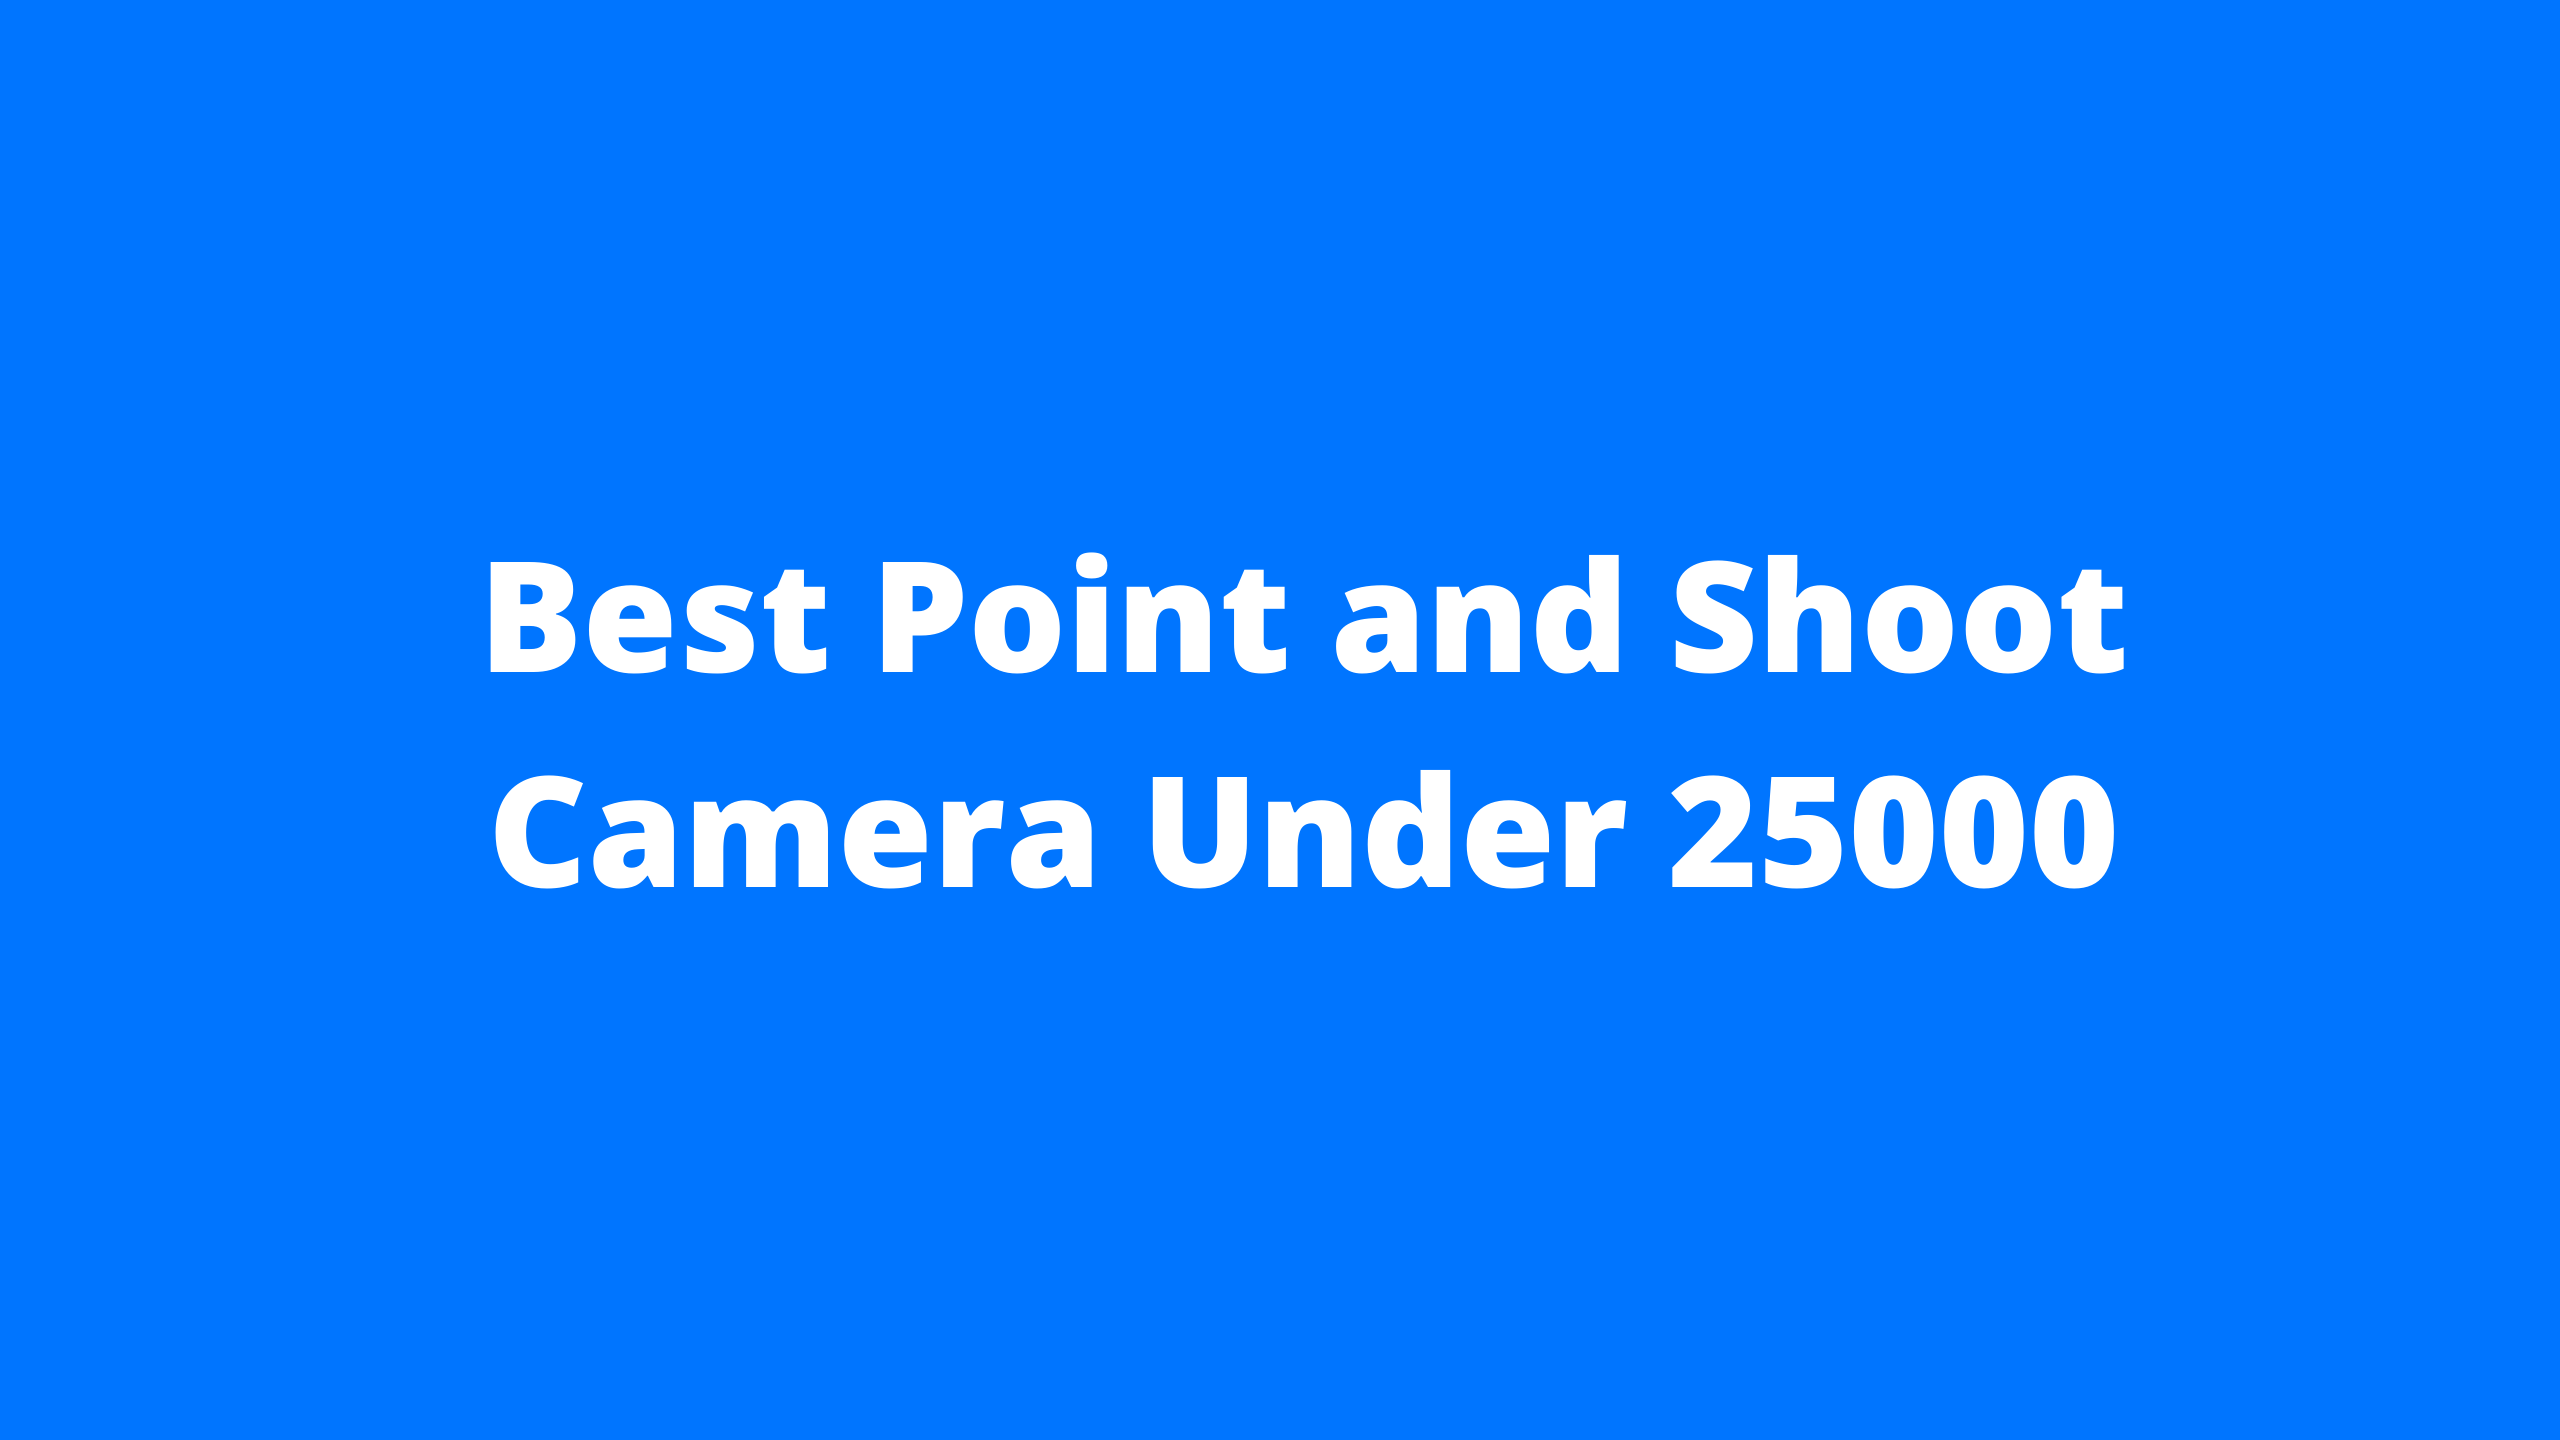 Best Point and Shoot Camera Under 25000